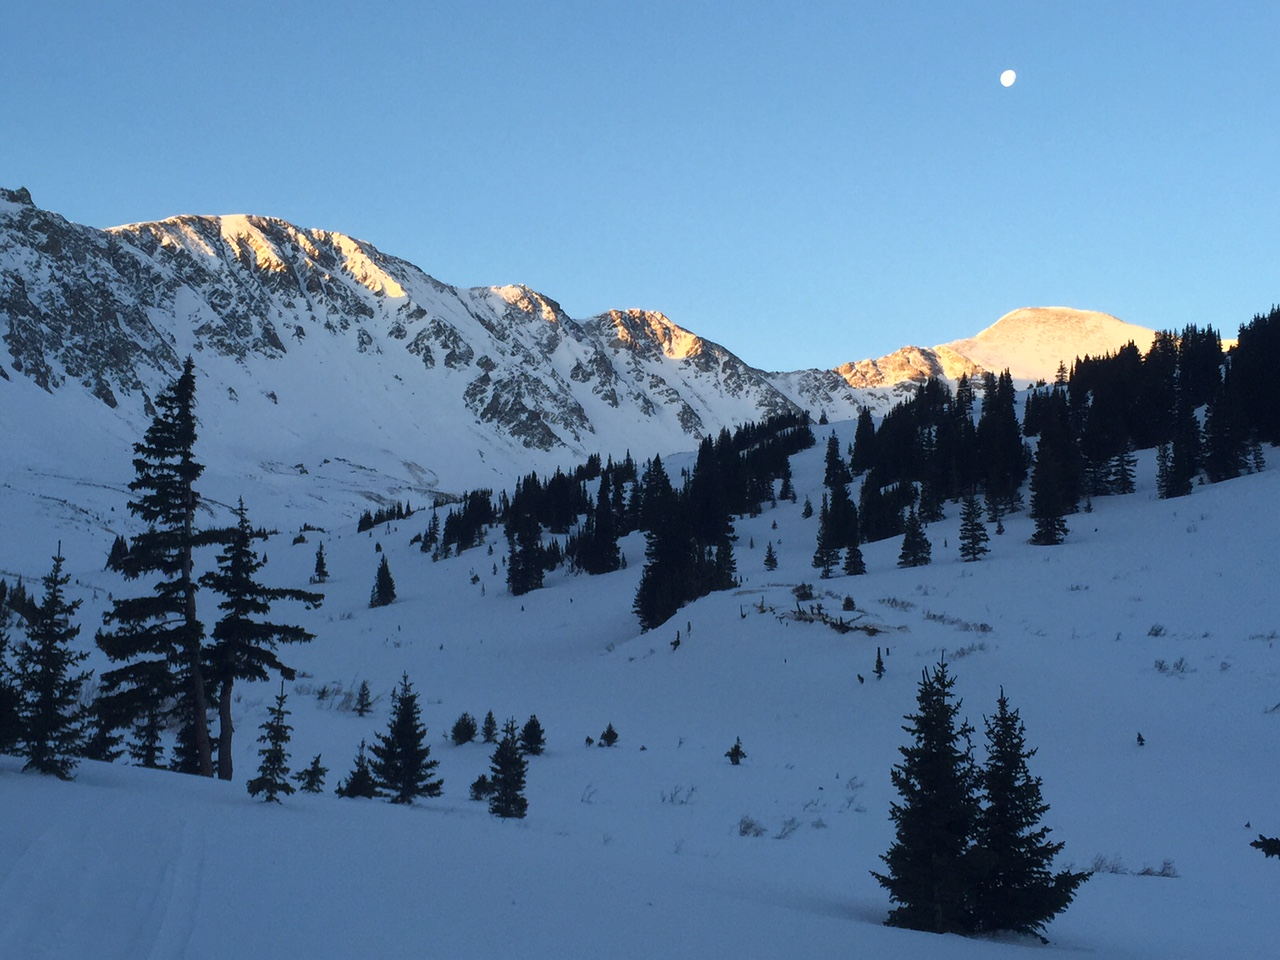 Sun coming up on Edwards Centennial (left) and Grays (far right).